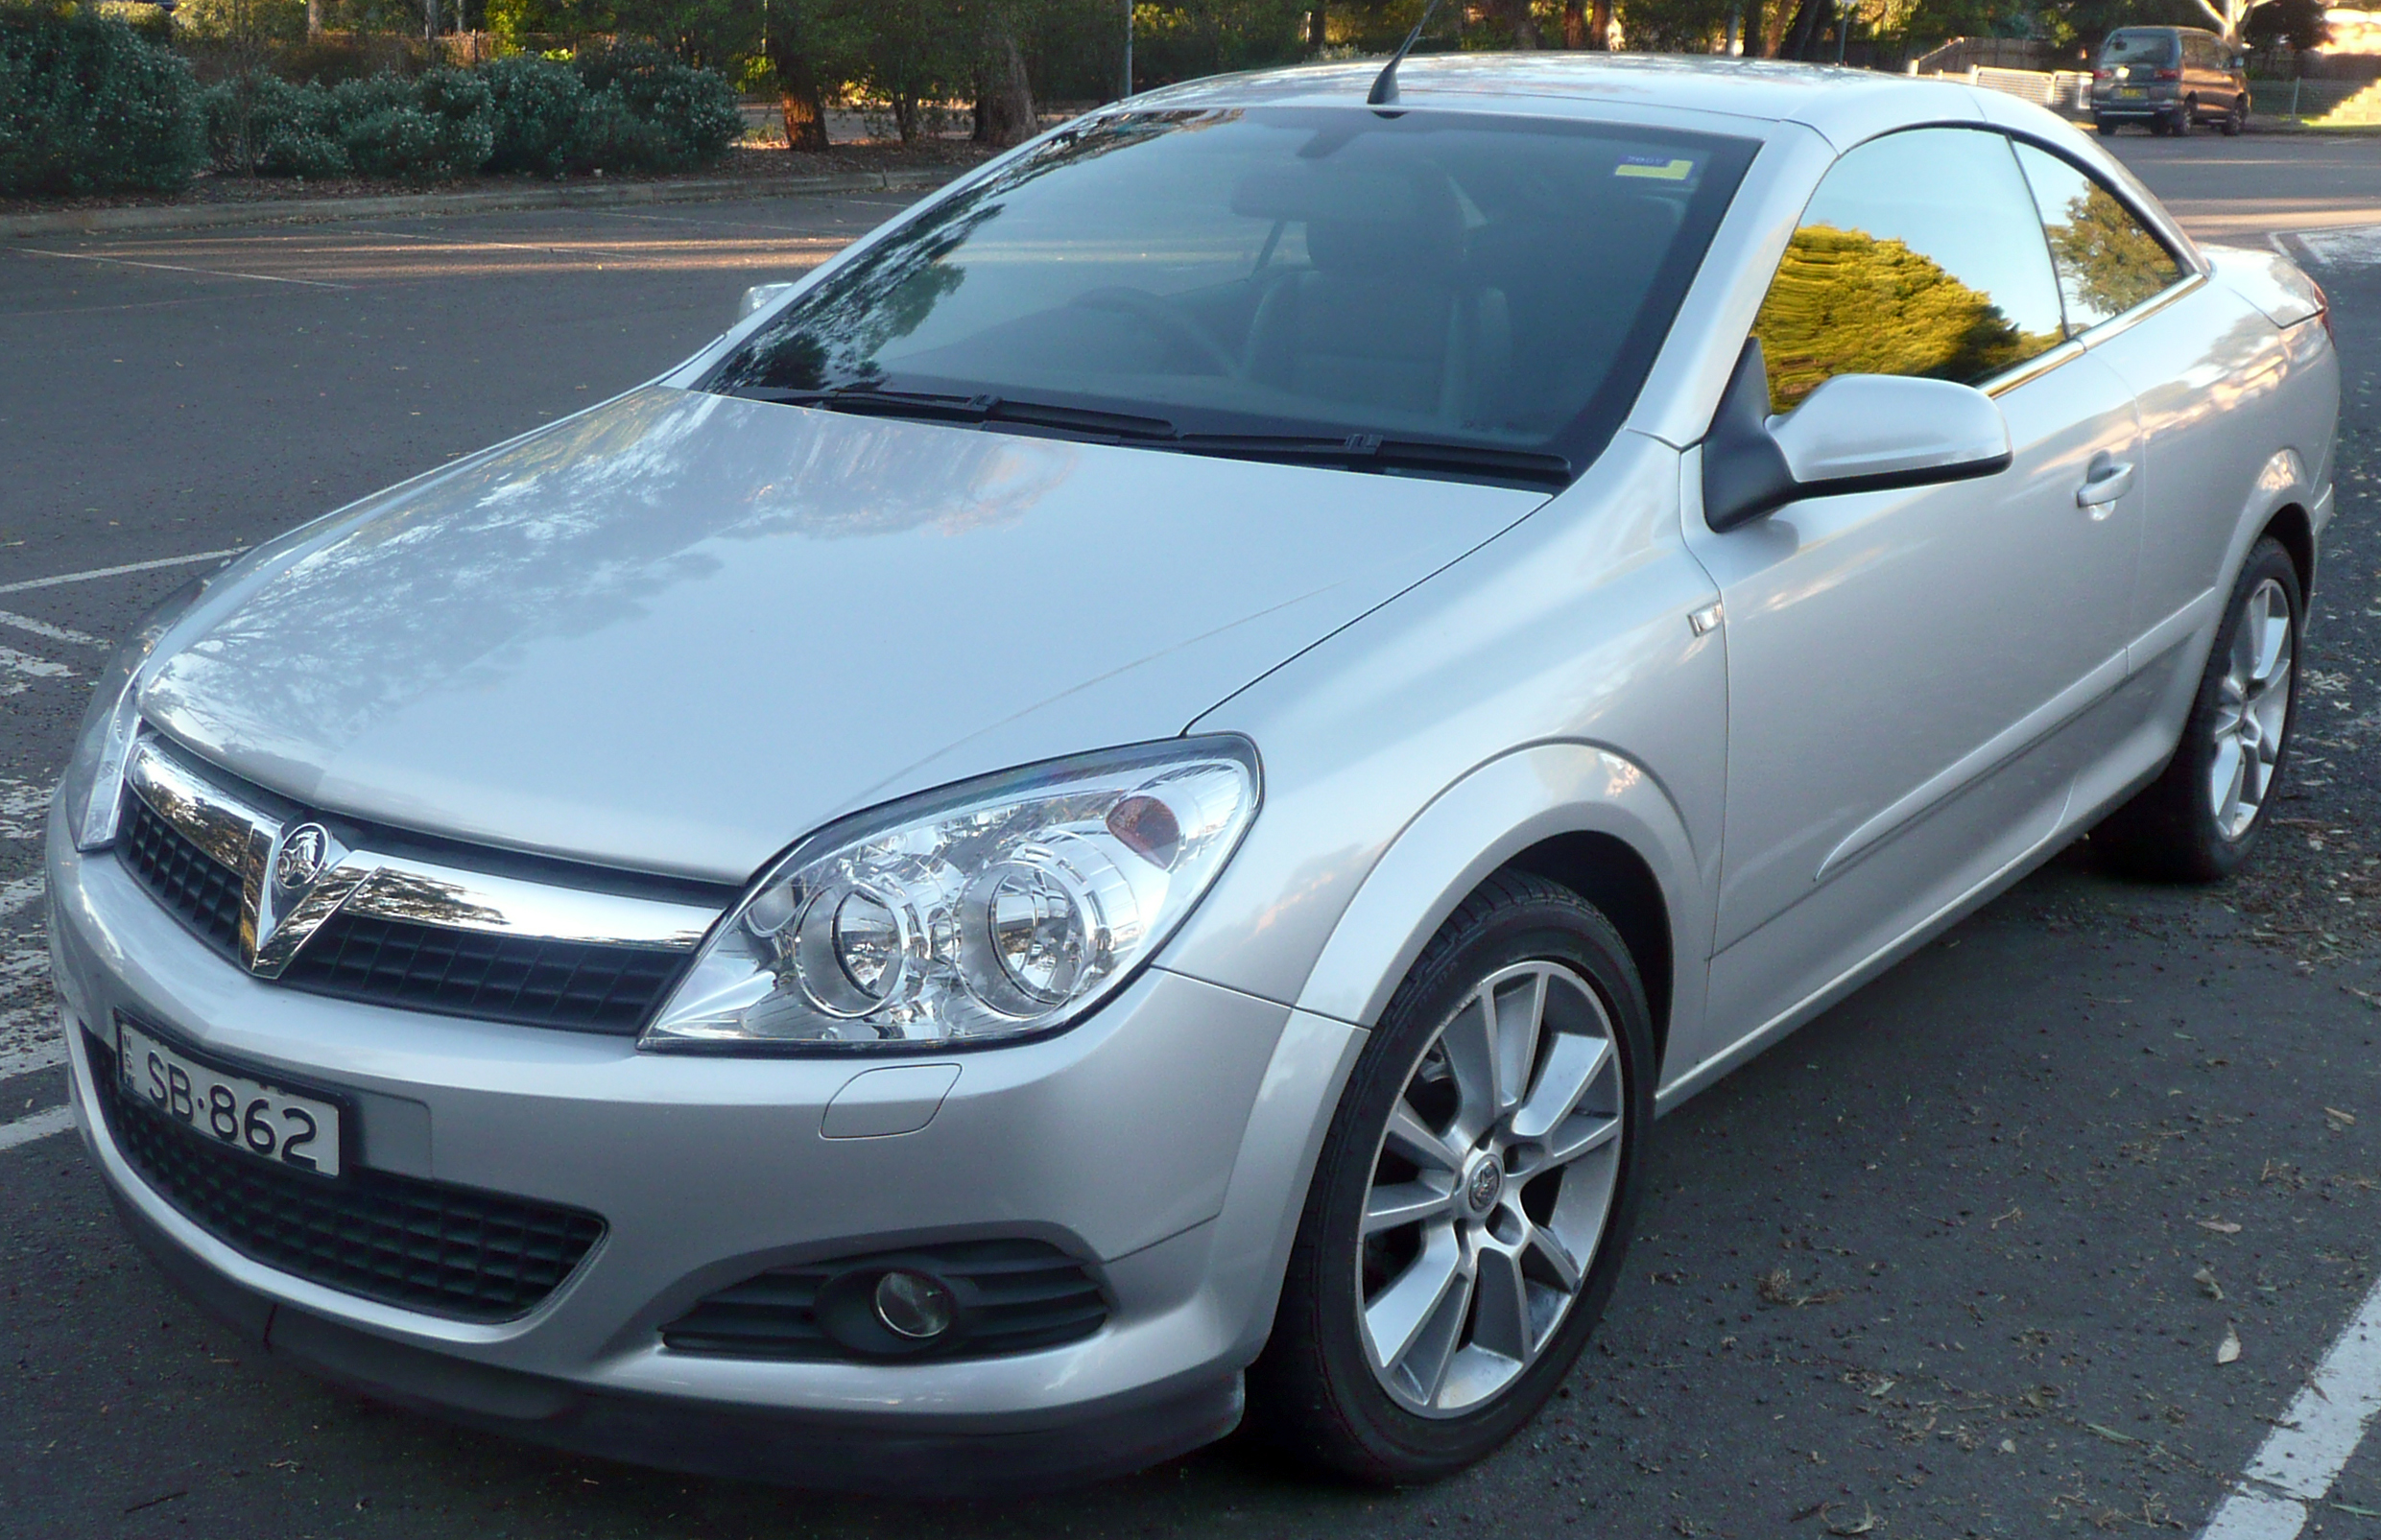 File:2006-2009 Holden Astra (AH) Twin Top convertible (2009-07-04) 01 ...